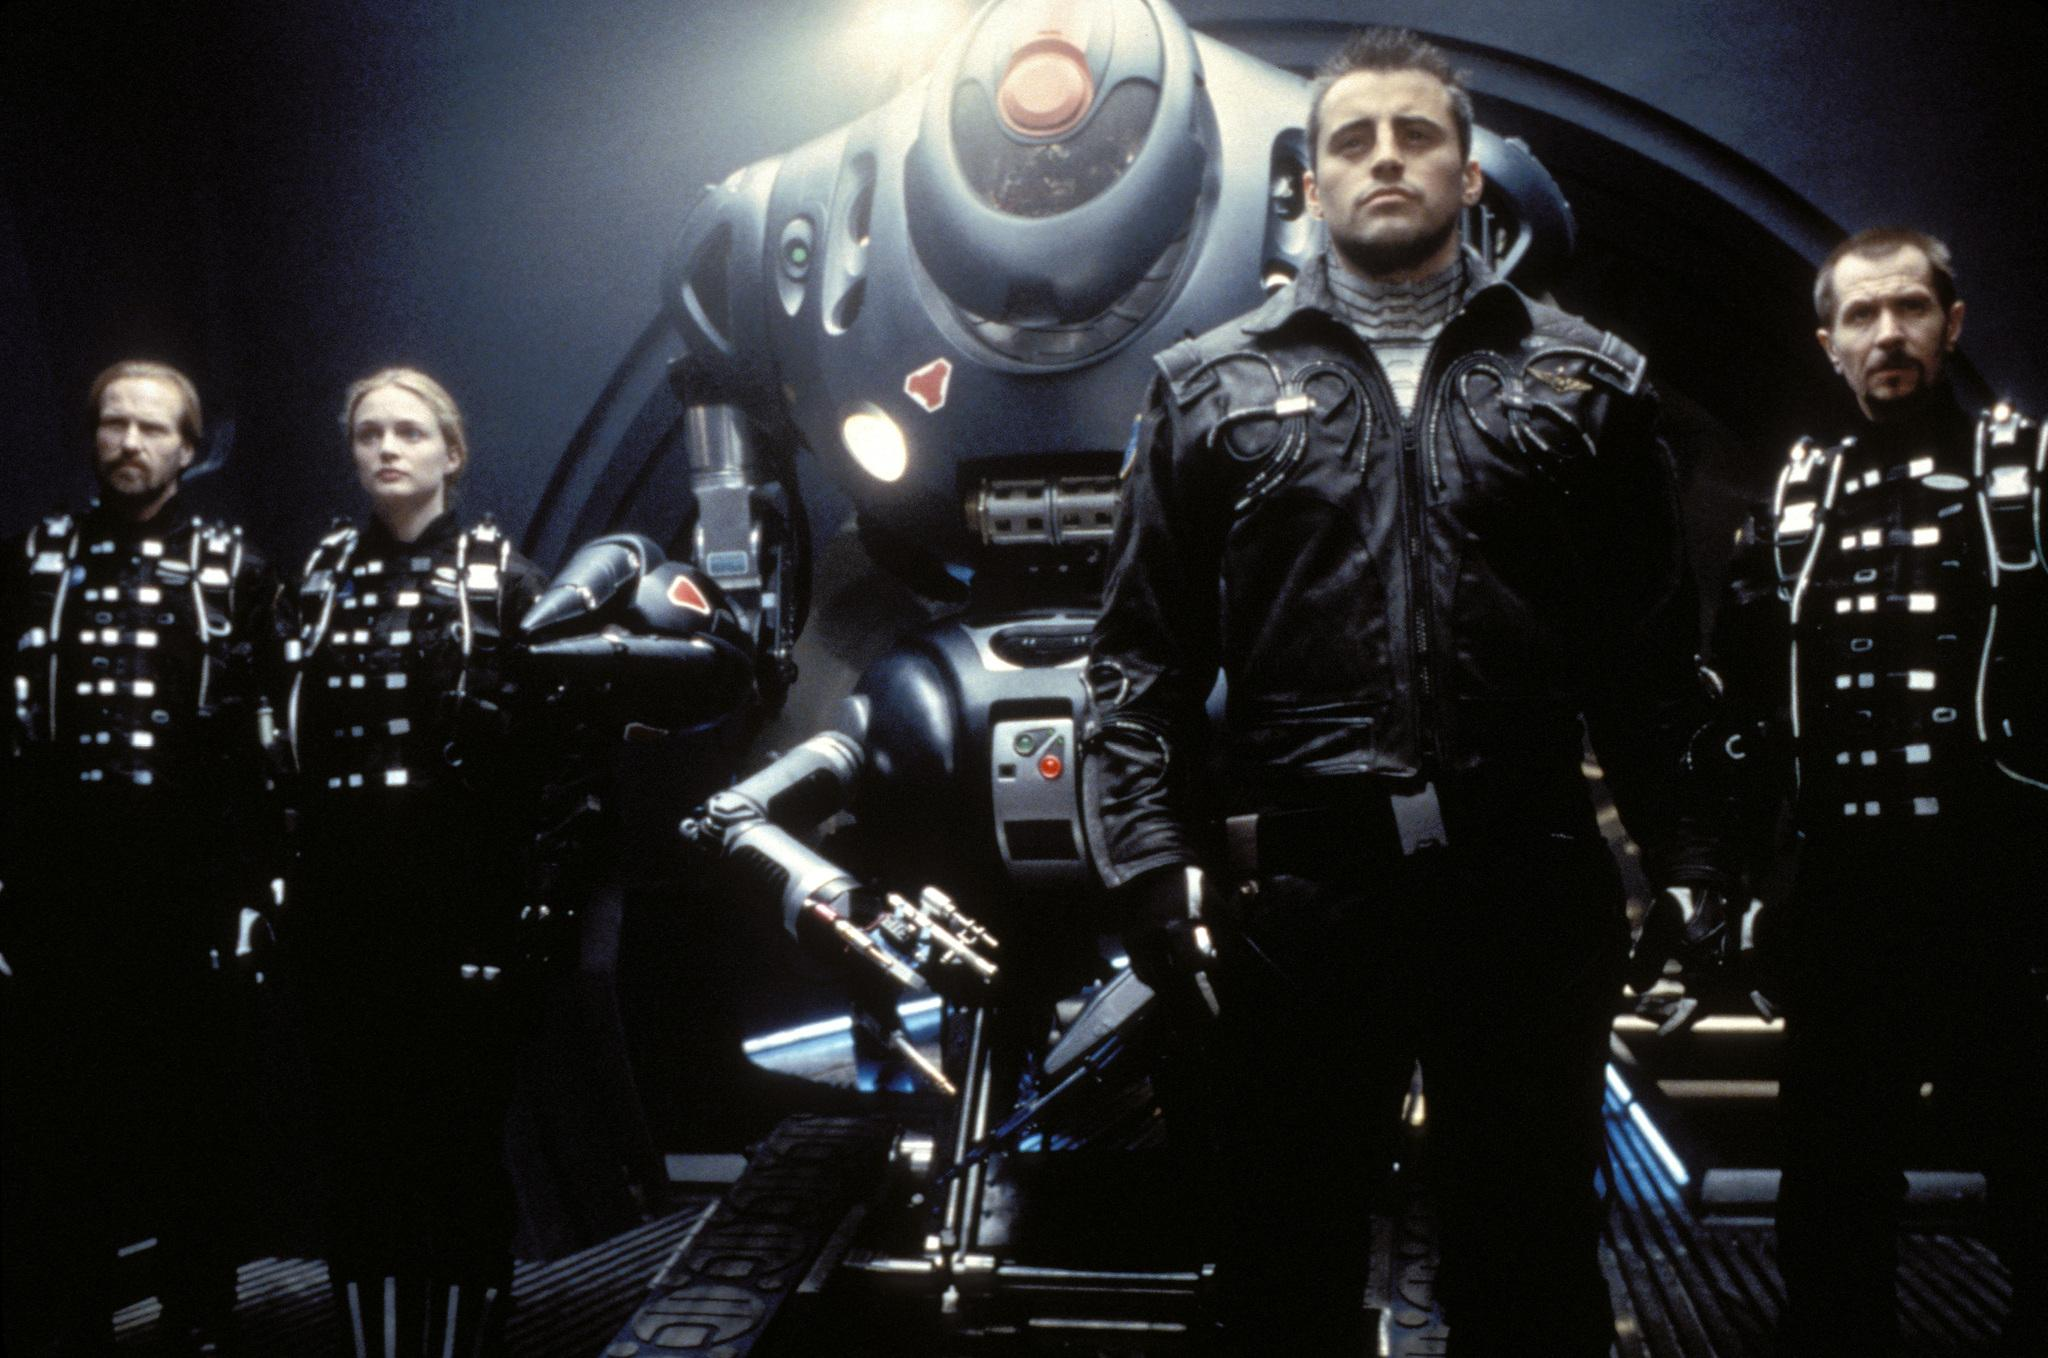 John Robinson (William Hurt), Judy Robinson (Heather Graham), The Robot, Major Don West (Matt LeBlanc) and Dr Zachary Smith (Gary Oldman) in Lost in Space (1998)